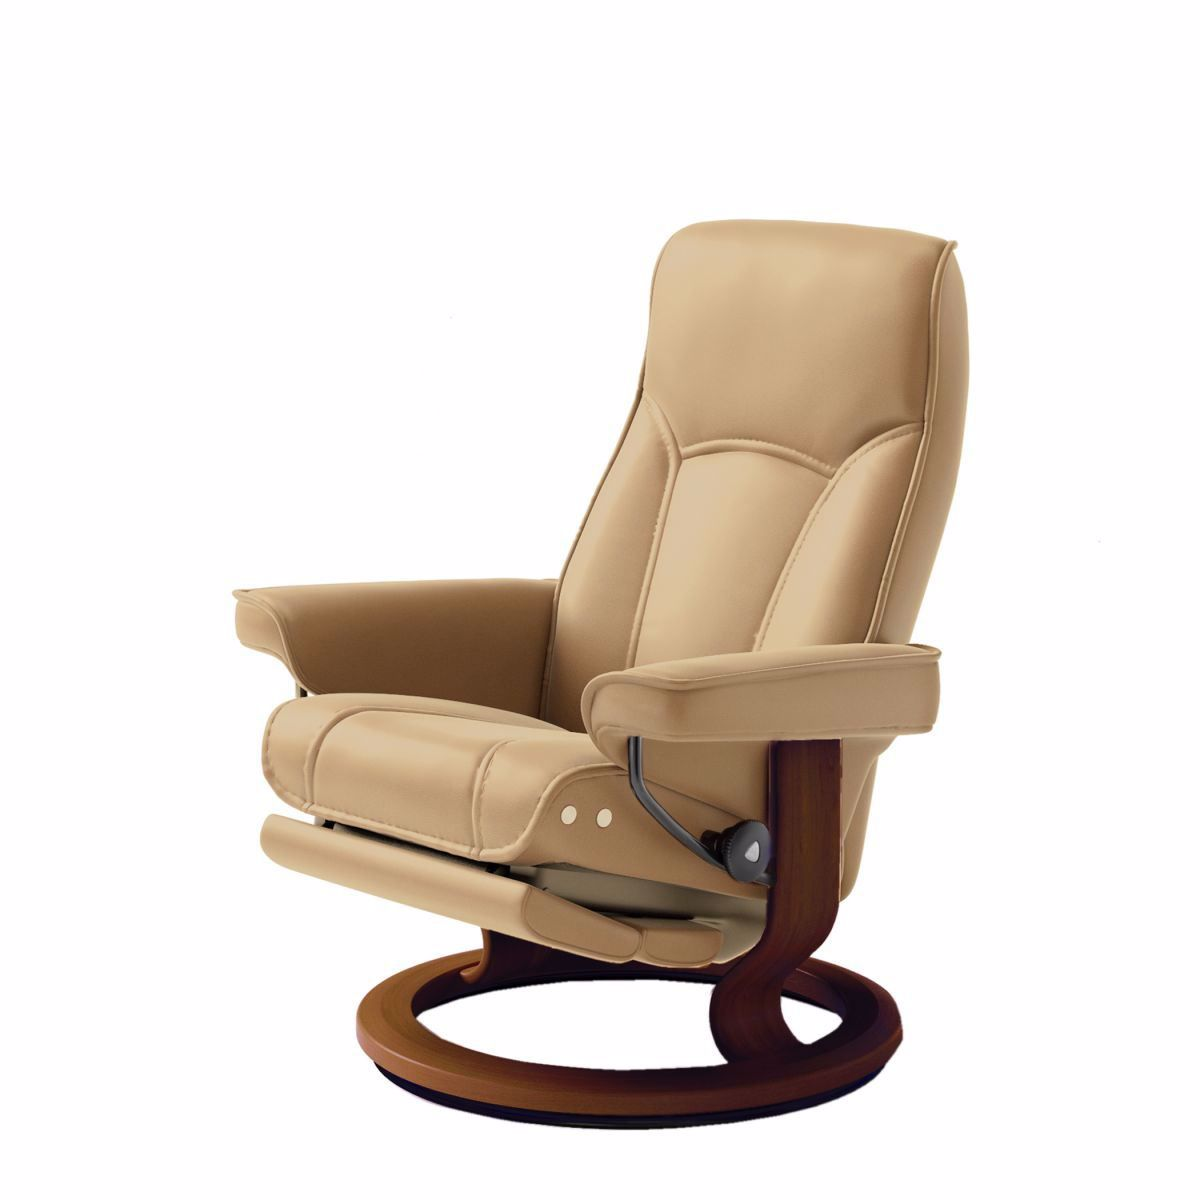 Classic Chair Stressless Senator Classic Chair With Leg Comfort